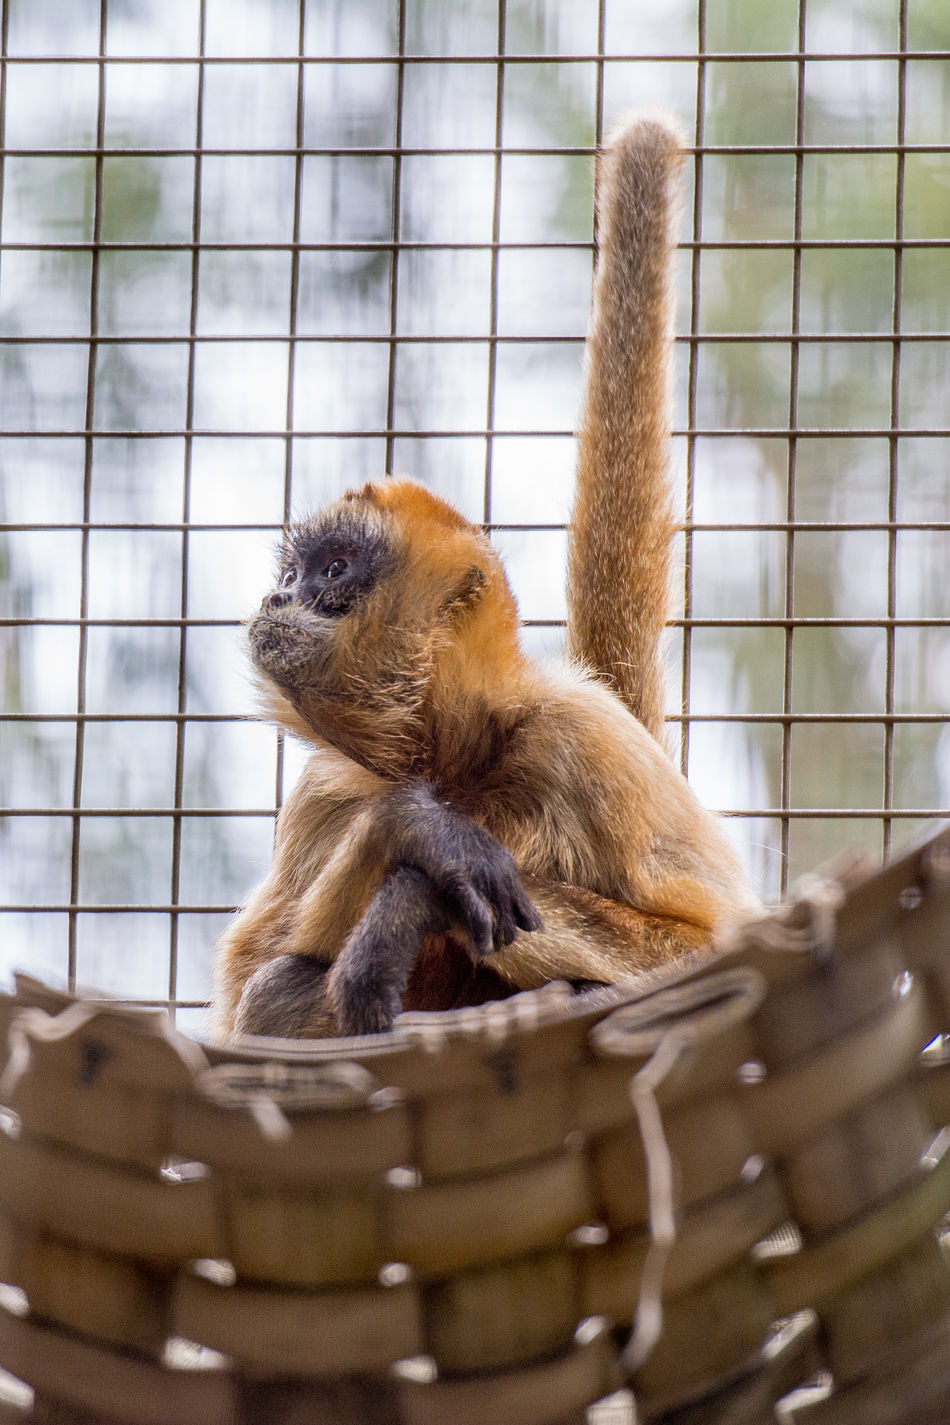 Beautiful stock photos of monkey, Brown - Color, Cute, Hammock, Innocence